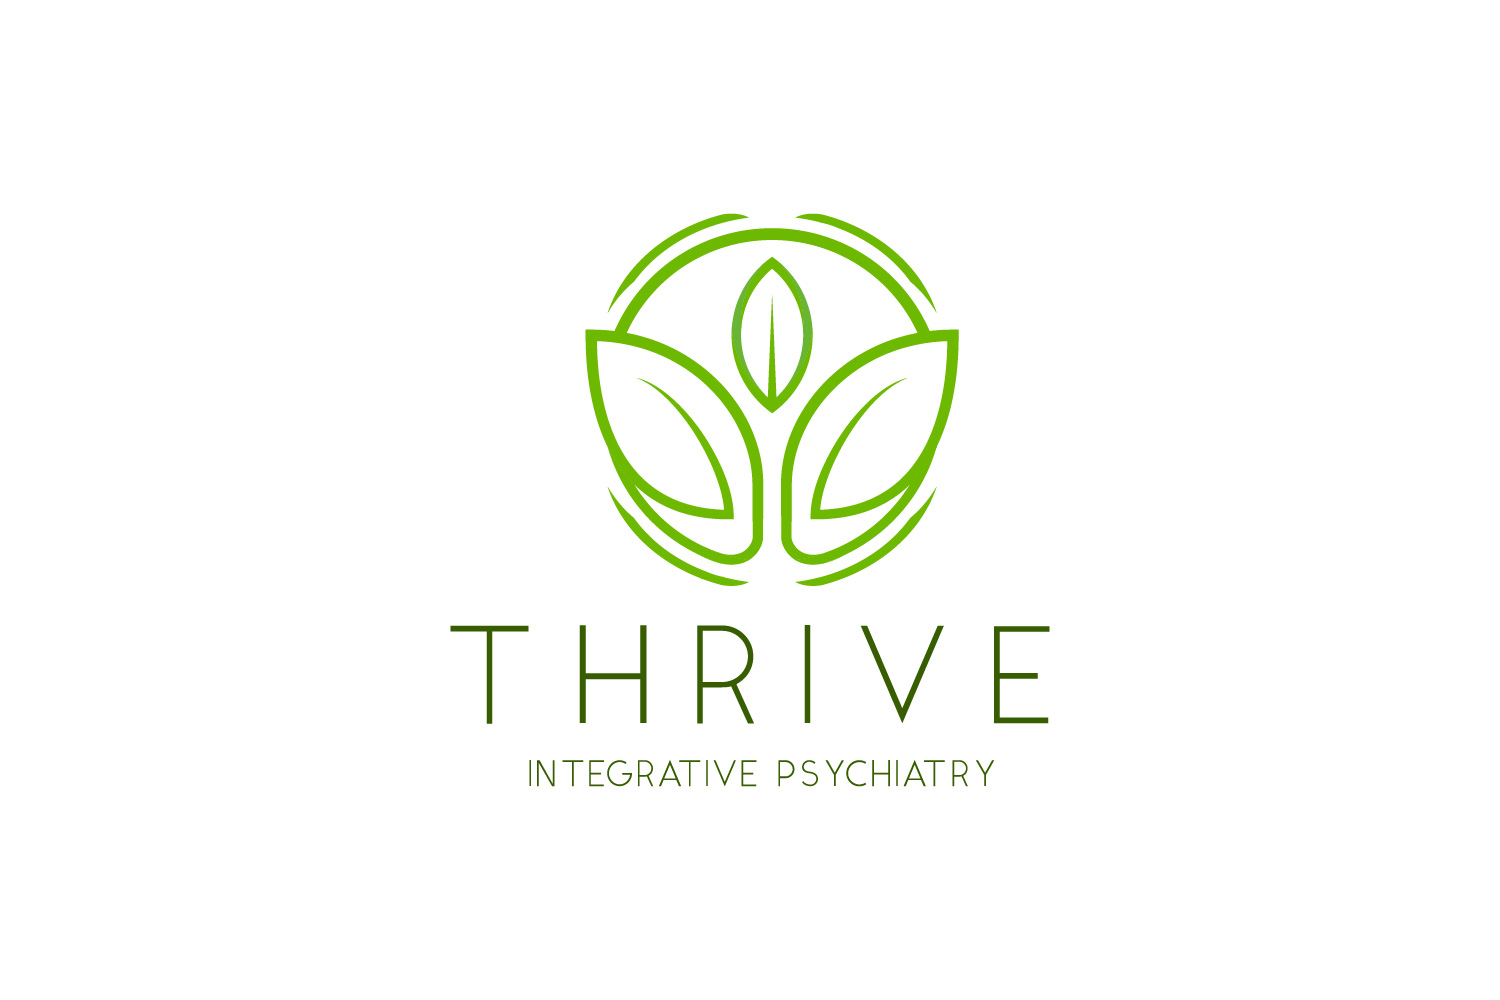 Playful, Personable, Healthcare Logo Design for Thrive.